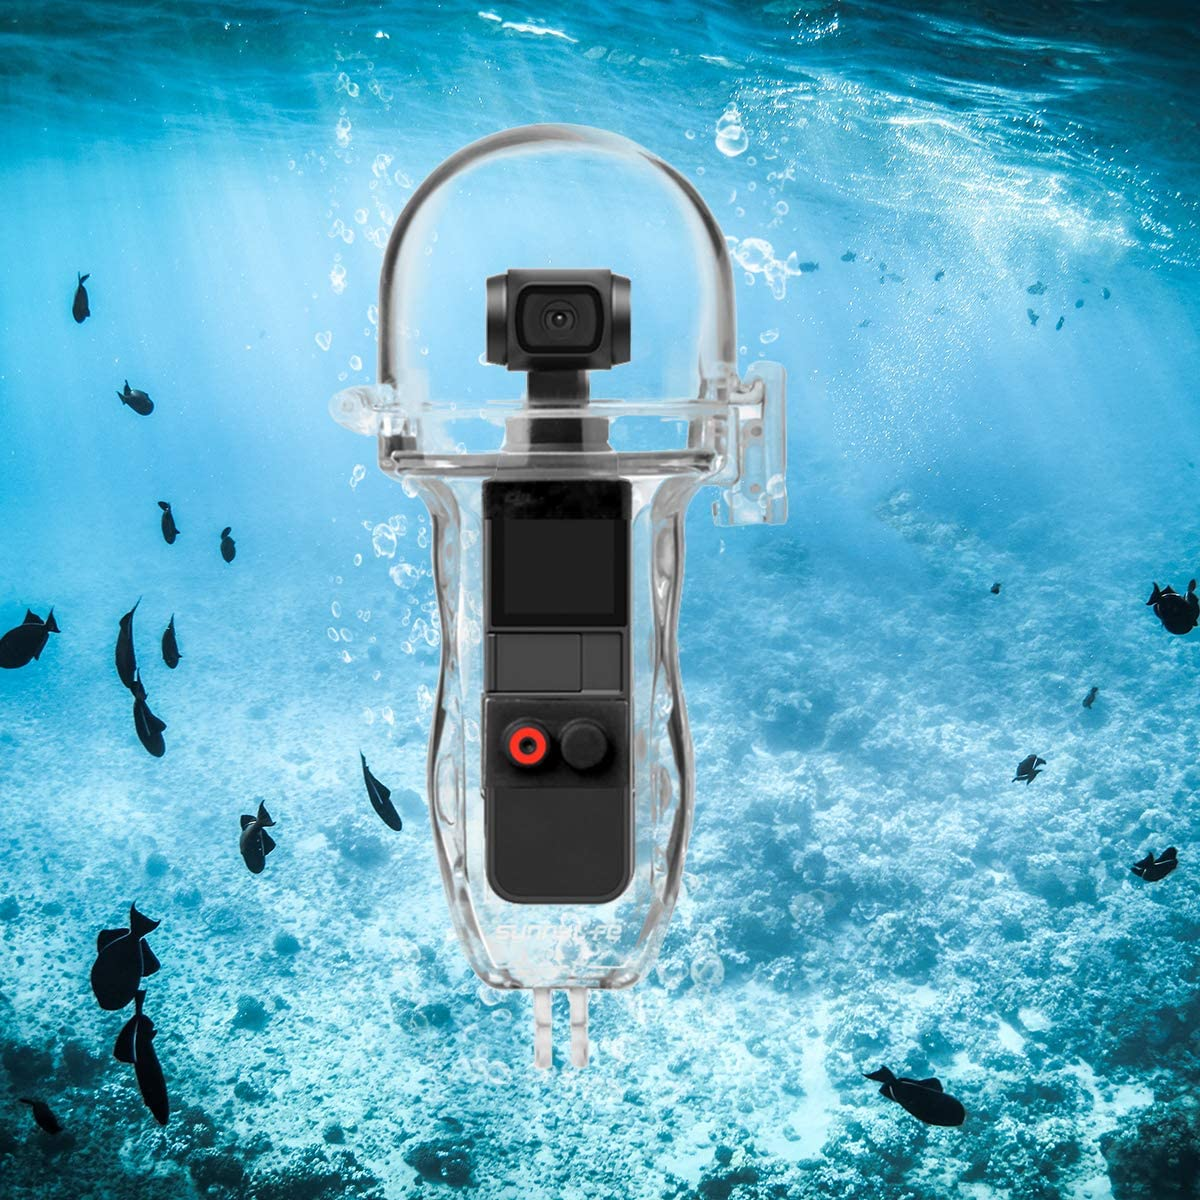 Owoda Flash Diving Light Underwater High Power Waterproof LED Fill Light Chargeable Battery for DJI OSMO Action//GoPro Hero 6//5//4//3//2 SJCAM//Action Cameras Accessories